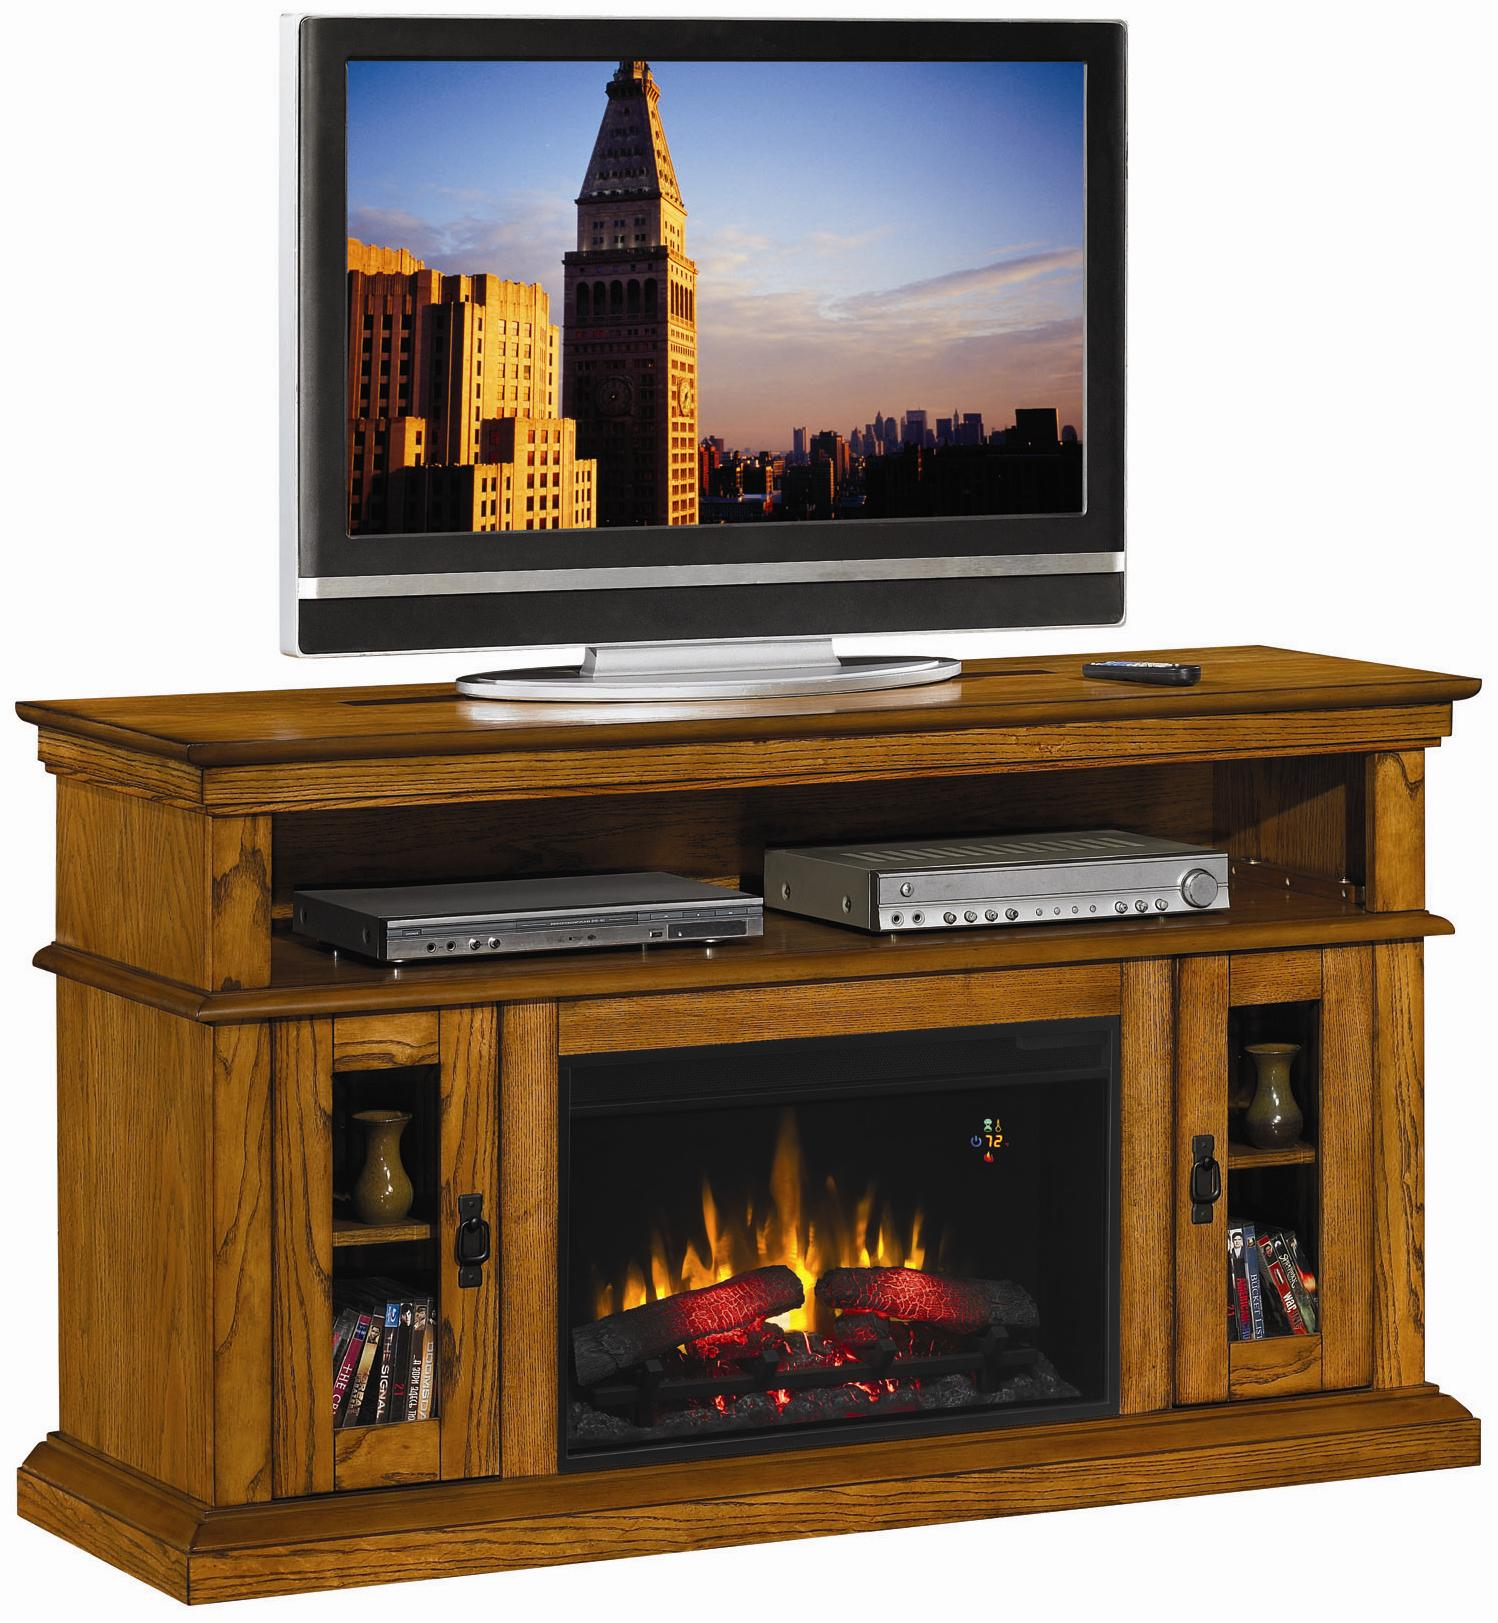 ClassicFlame Brookfield Brookfield Electric Fireplace - Item Number: 26MM2209-O107